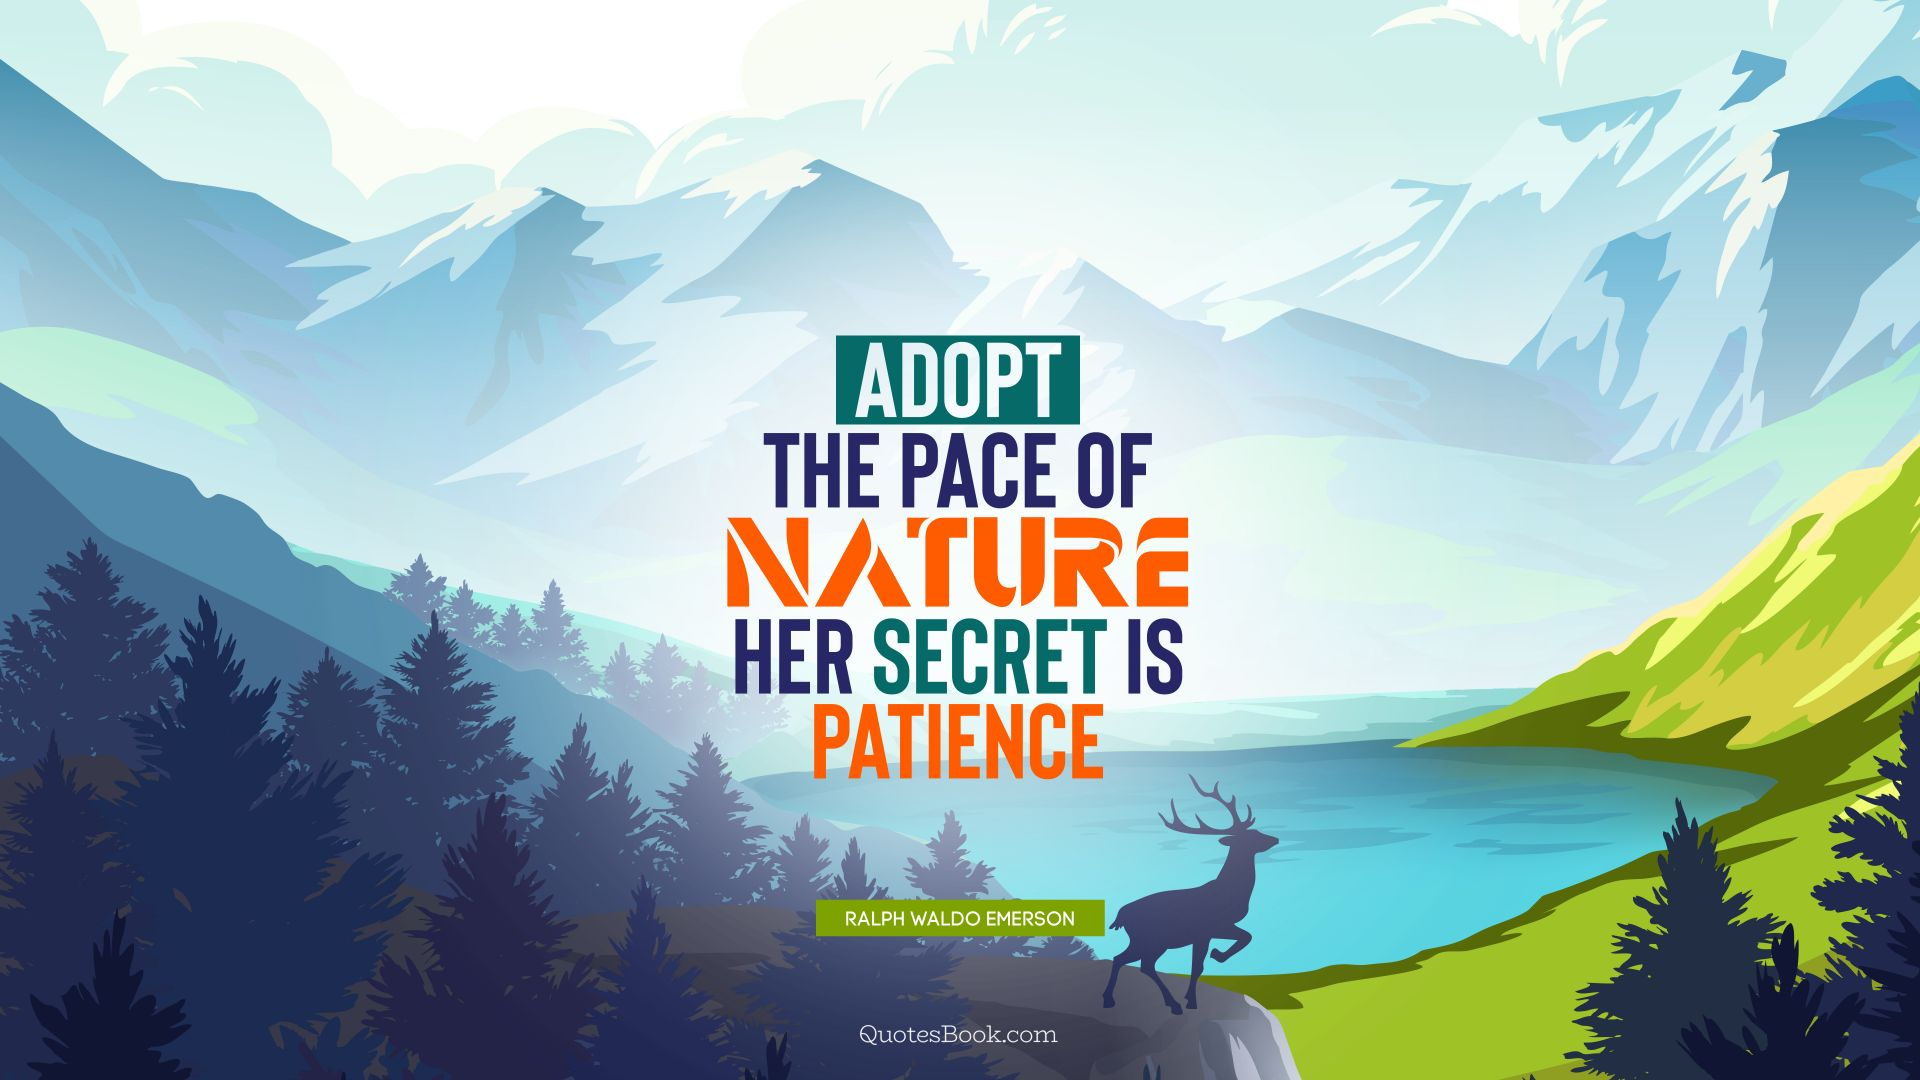 Adopt the pace of nature: her secret is patience. - Quote by Ralph Waldo Emerson